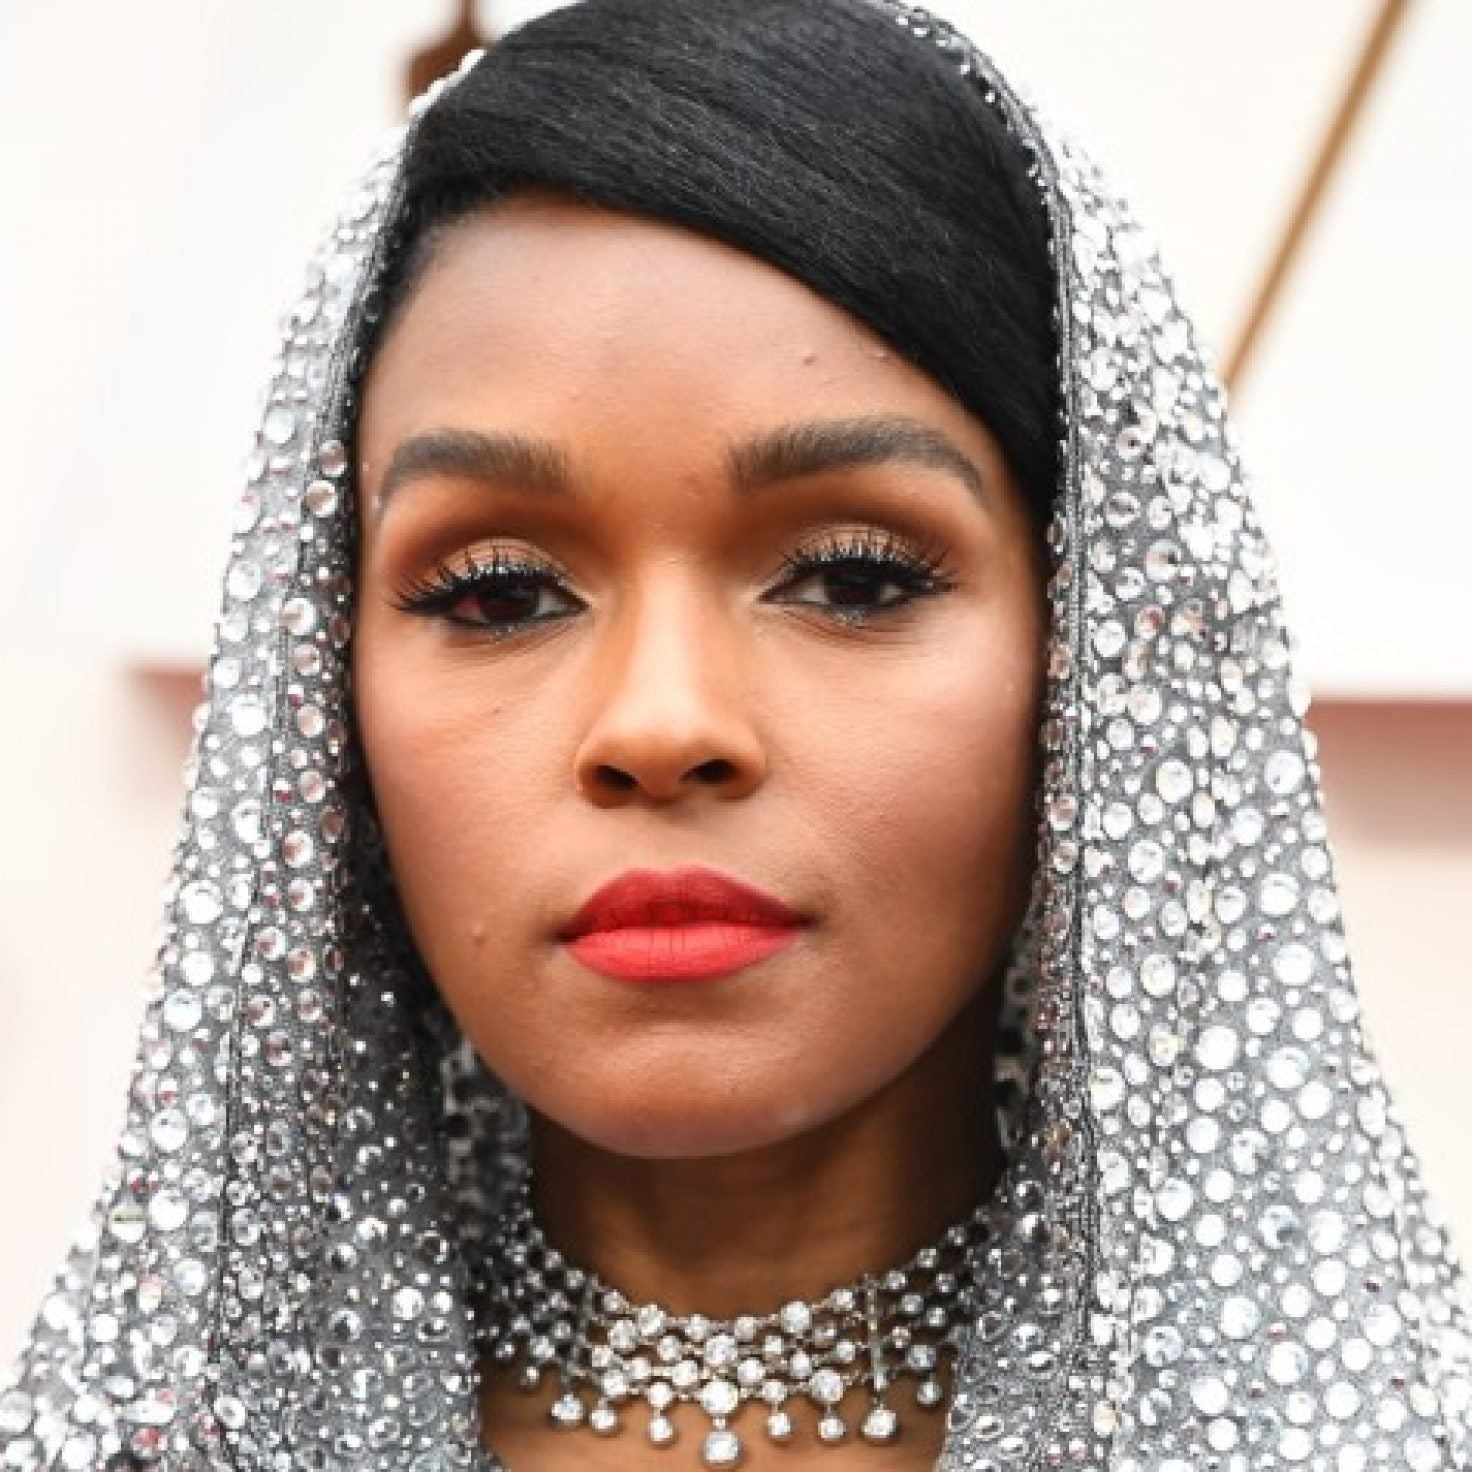 2020 Oscars: Here's All Of The Black Beauty Moments You Missed From The Red Carpet